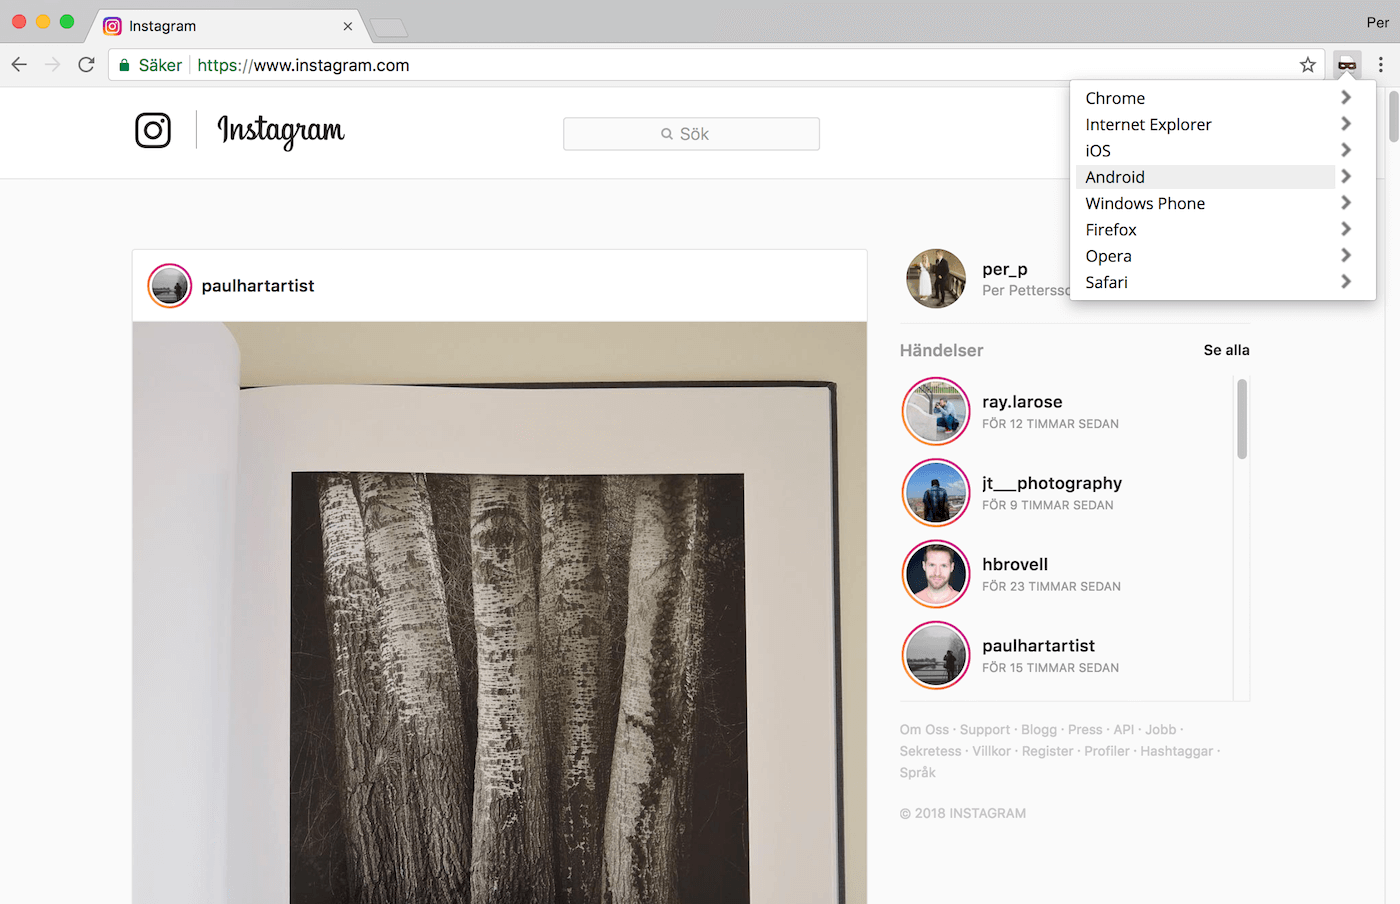 How to publish images on Instagram from your browser